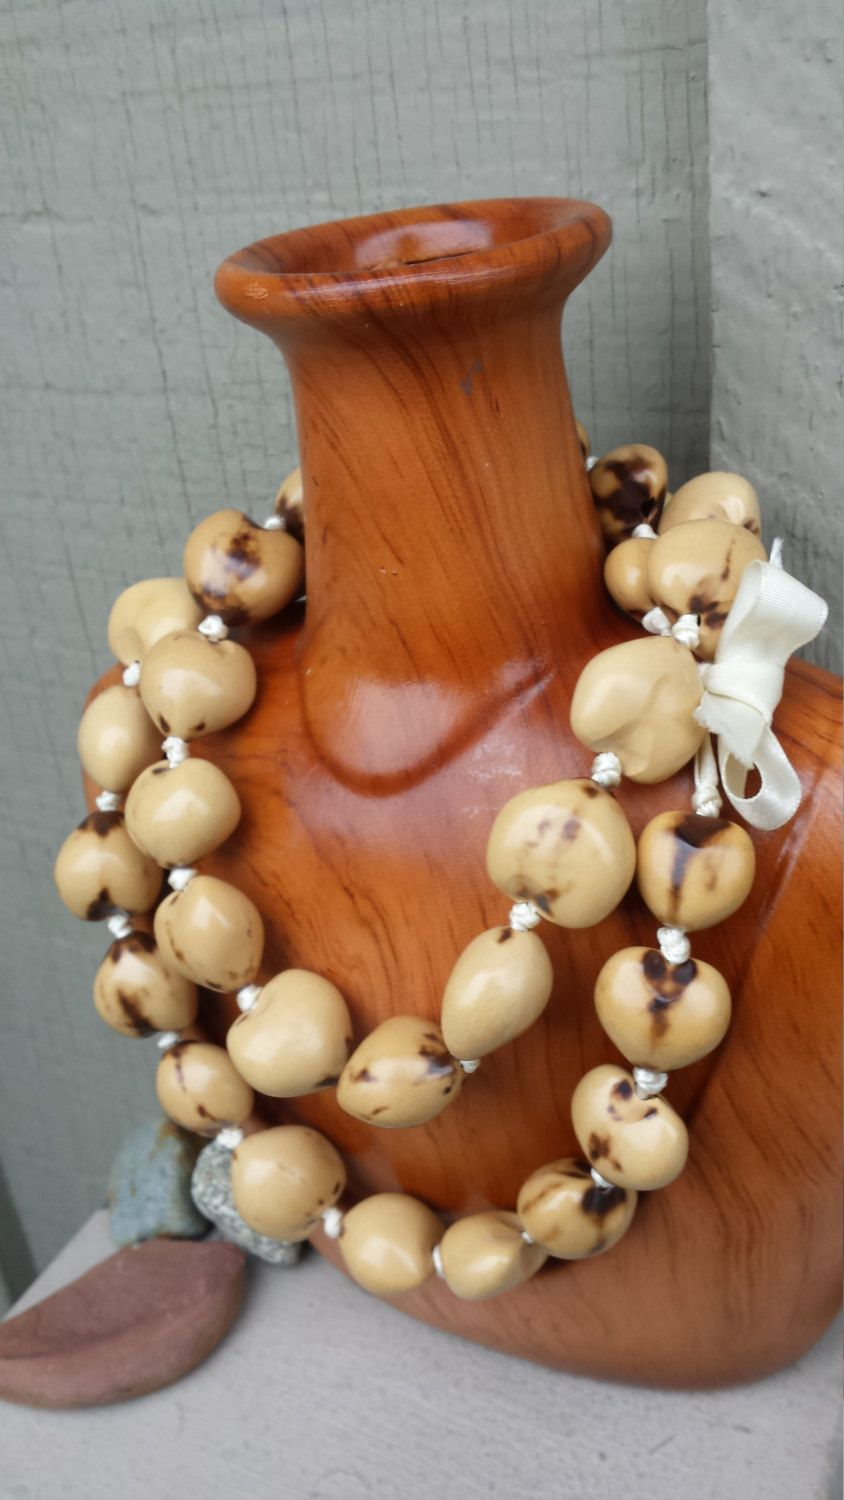 squirrel necklace and adorable anomaly nut products jewelry